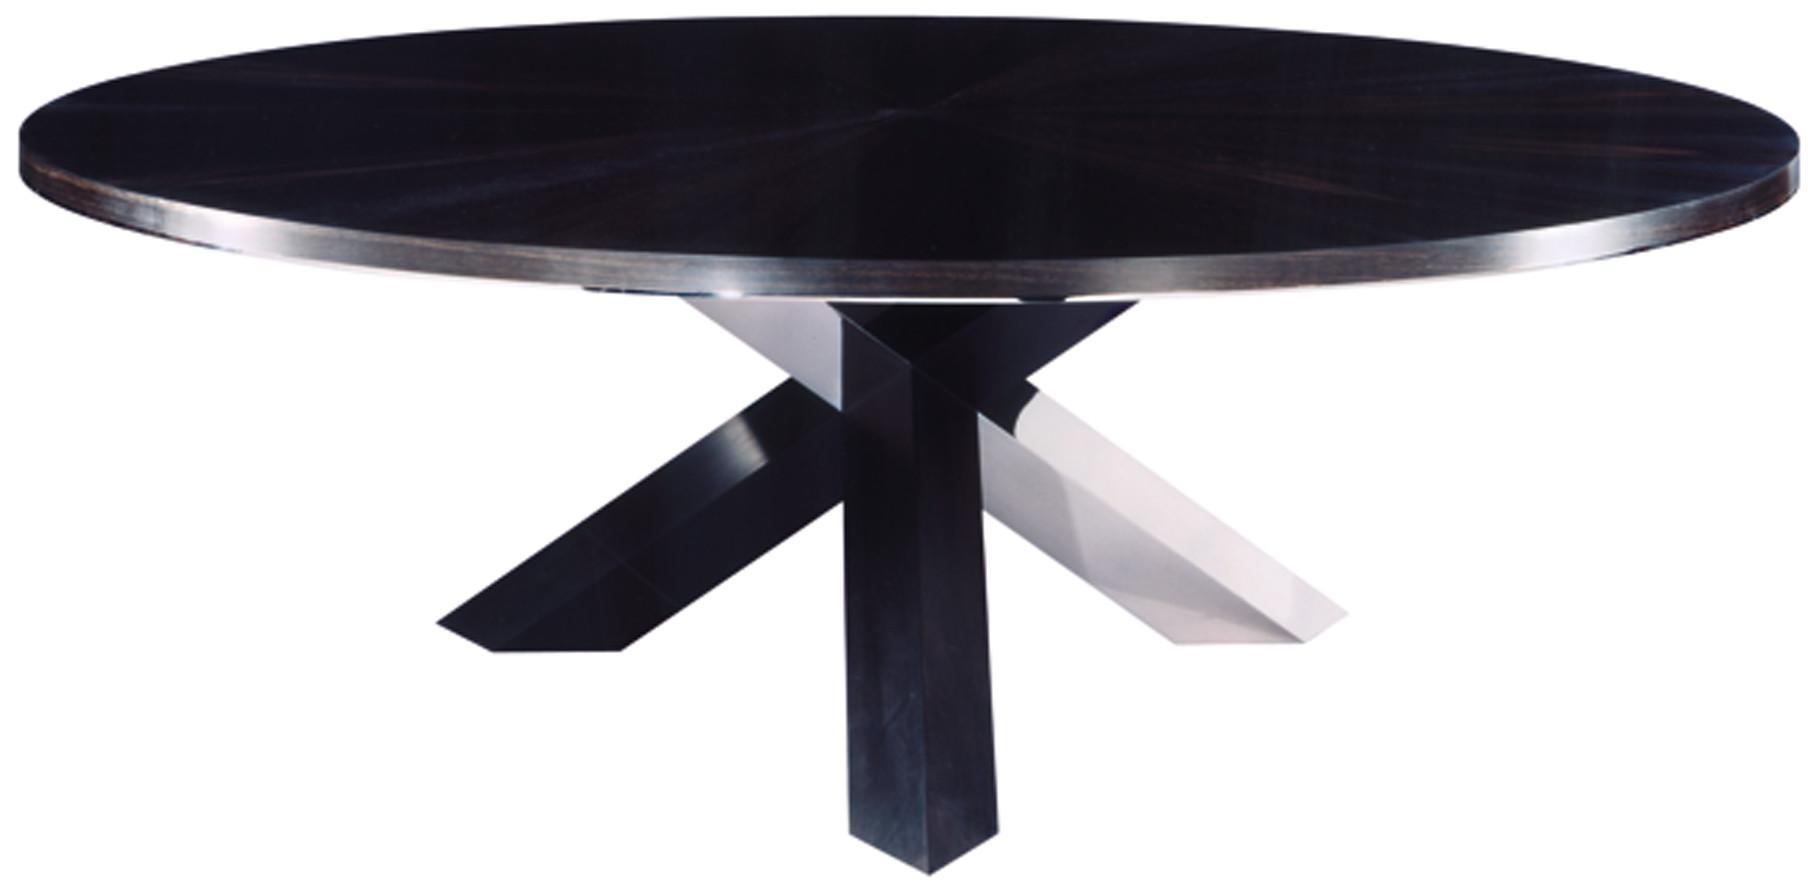 Stainless Steel Top Round Dining Table Buy